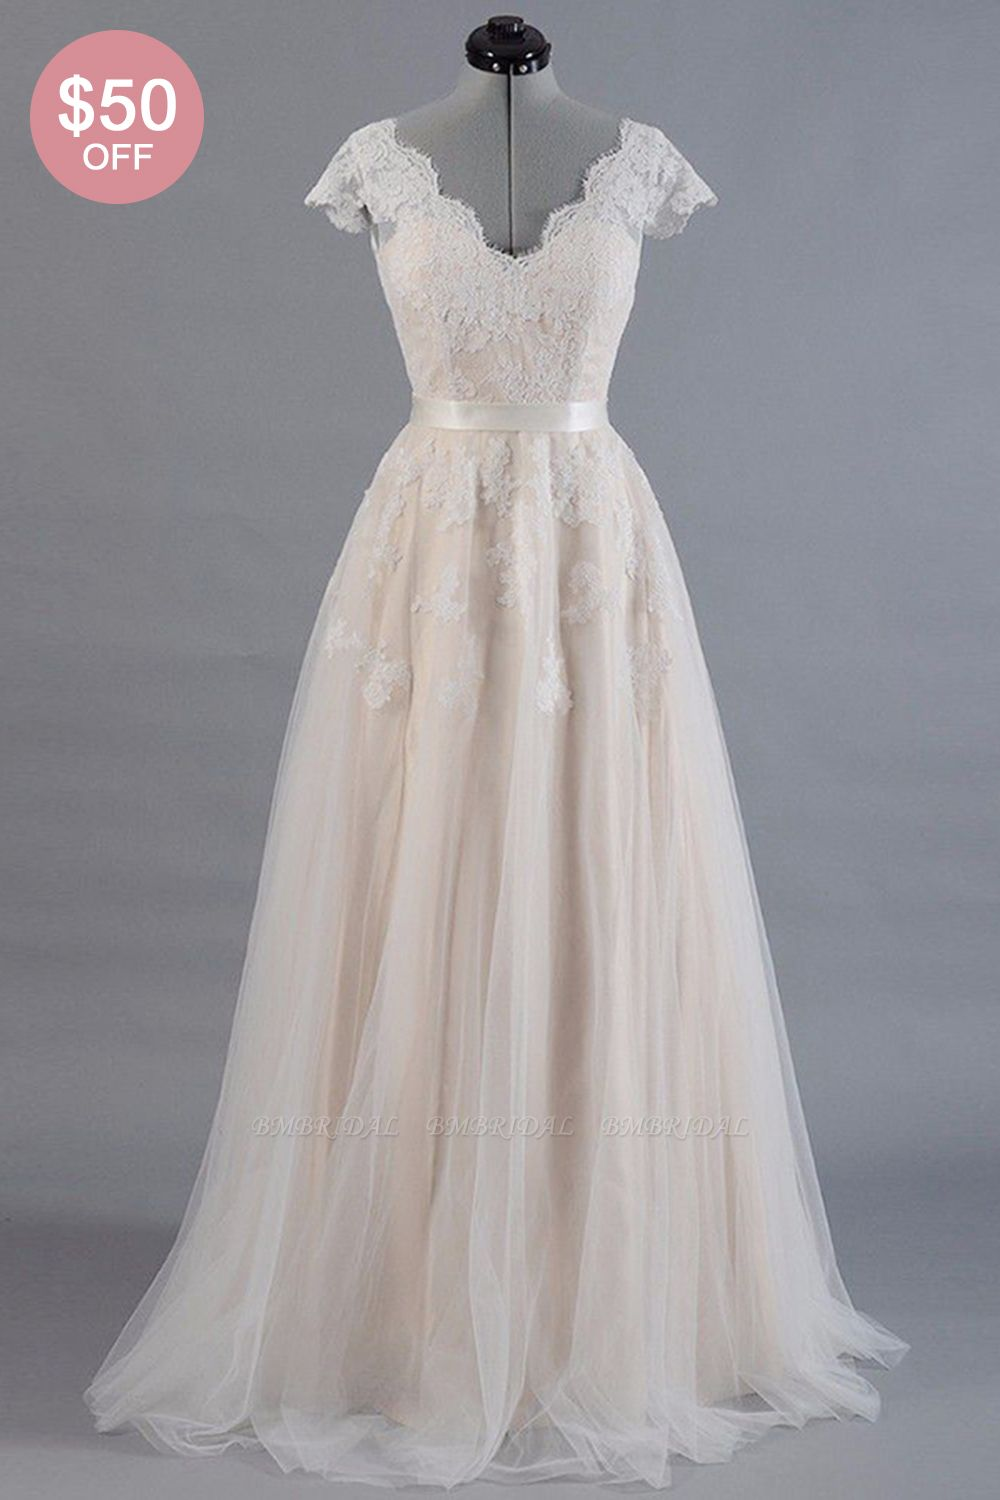 BMbridal Affordable V-neck A-line Wedding Dresses Shorts leeves Tulle Lace Bridal Gowns On Sale